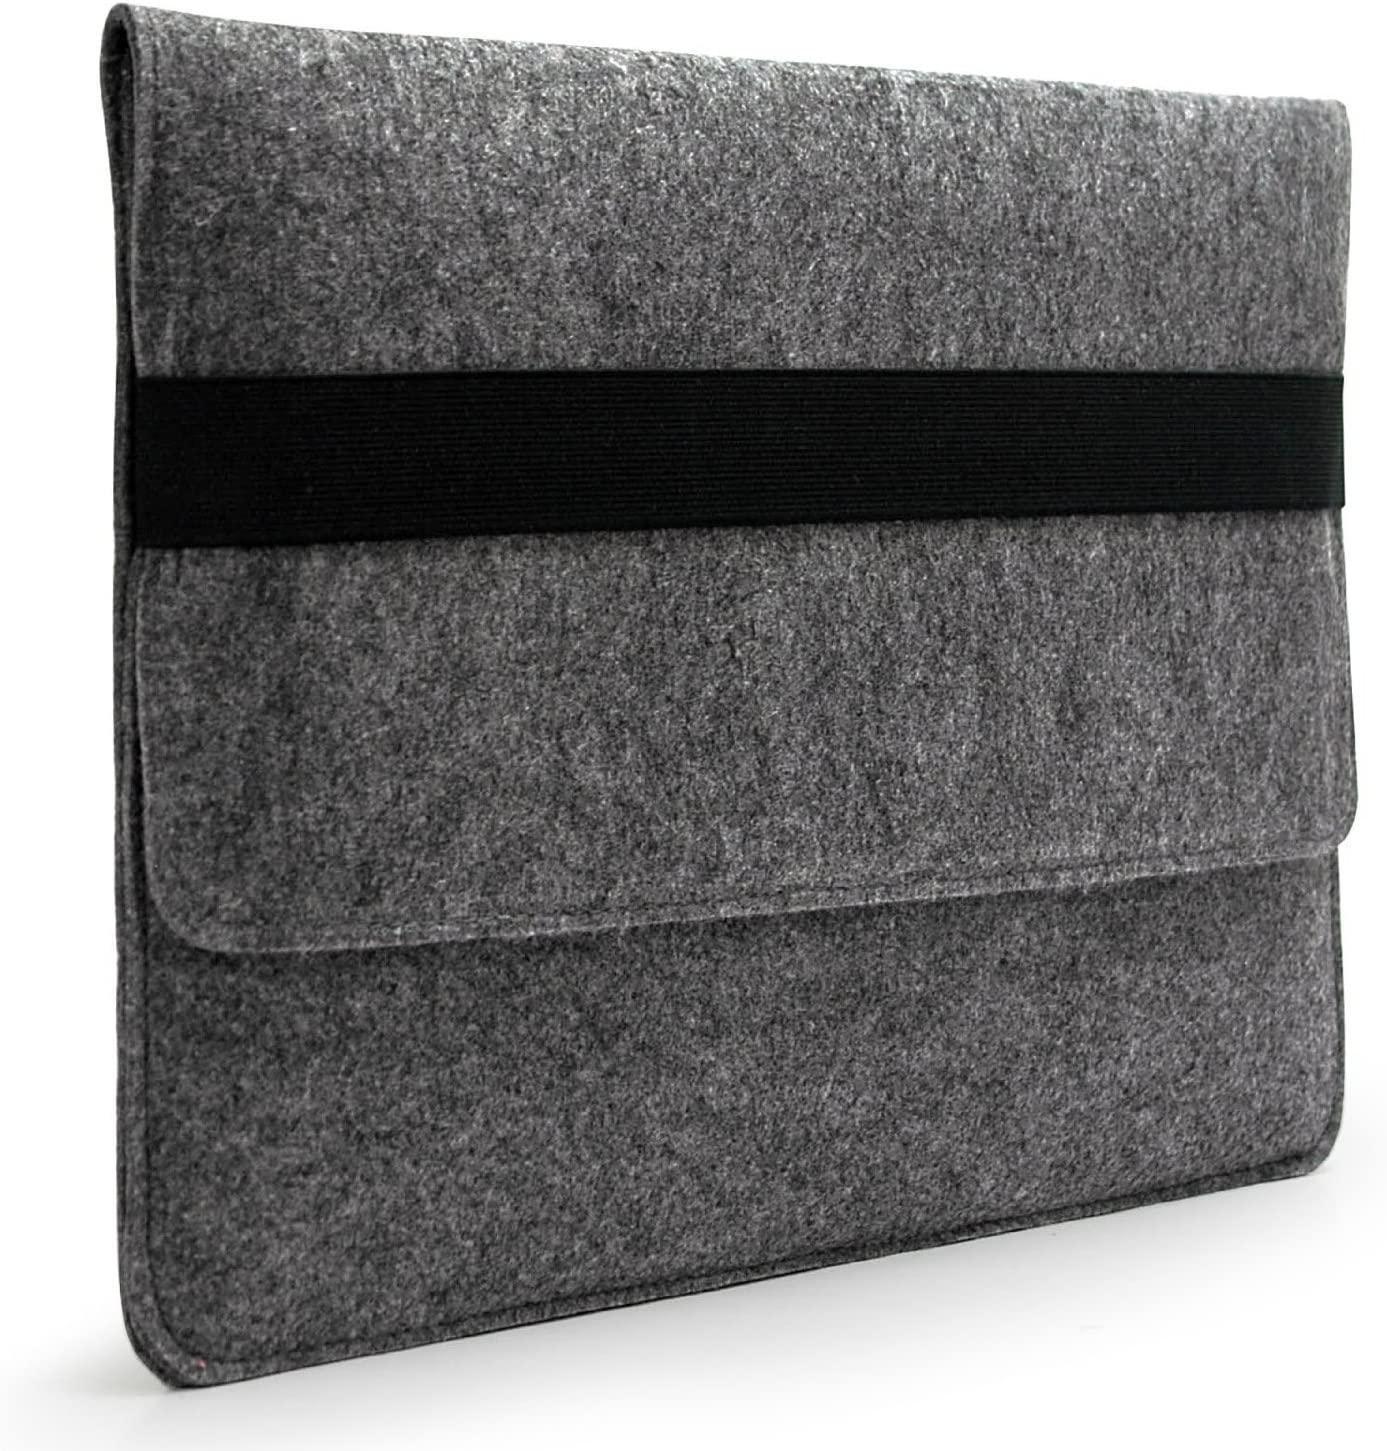 "LAVIEVERT Handmade Gray Felt Case Bag Sleeve Protector with Black Elastic Band for Apple 15"" MacBook Pro / 15"" MacBook Pro Retina and Most Popular 15-15.6 Inch Laptops/Notebooks/Ultrabooks"